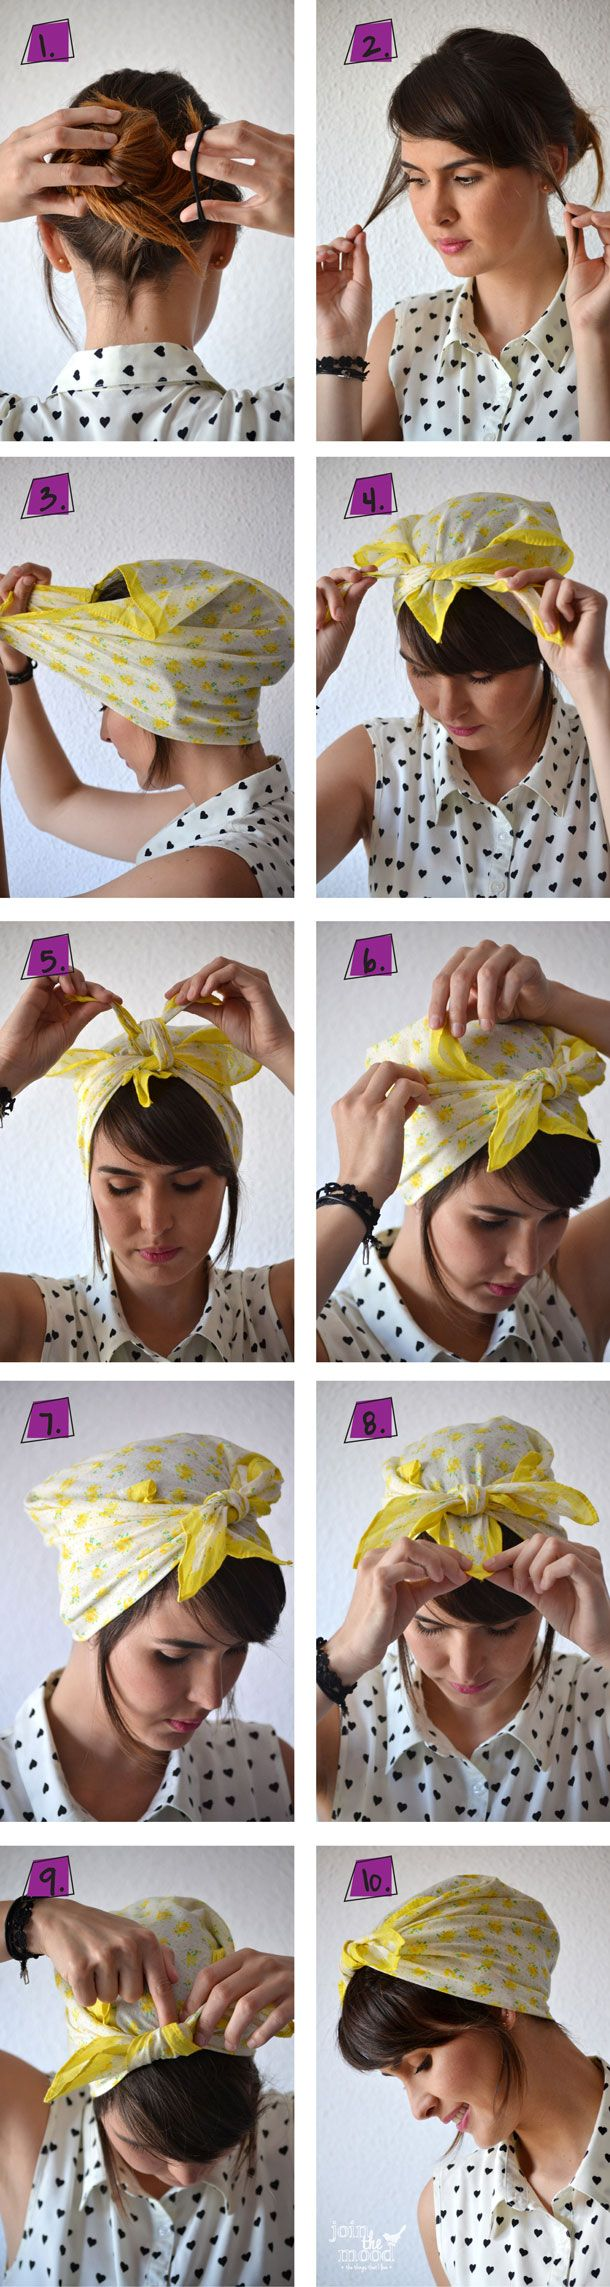 10 Tutorials for Bandana Hairstyles - Pretty Designs